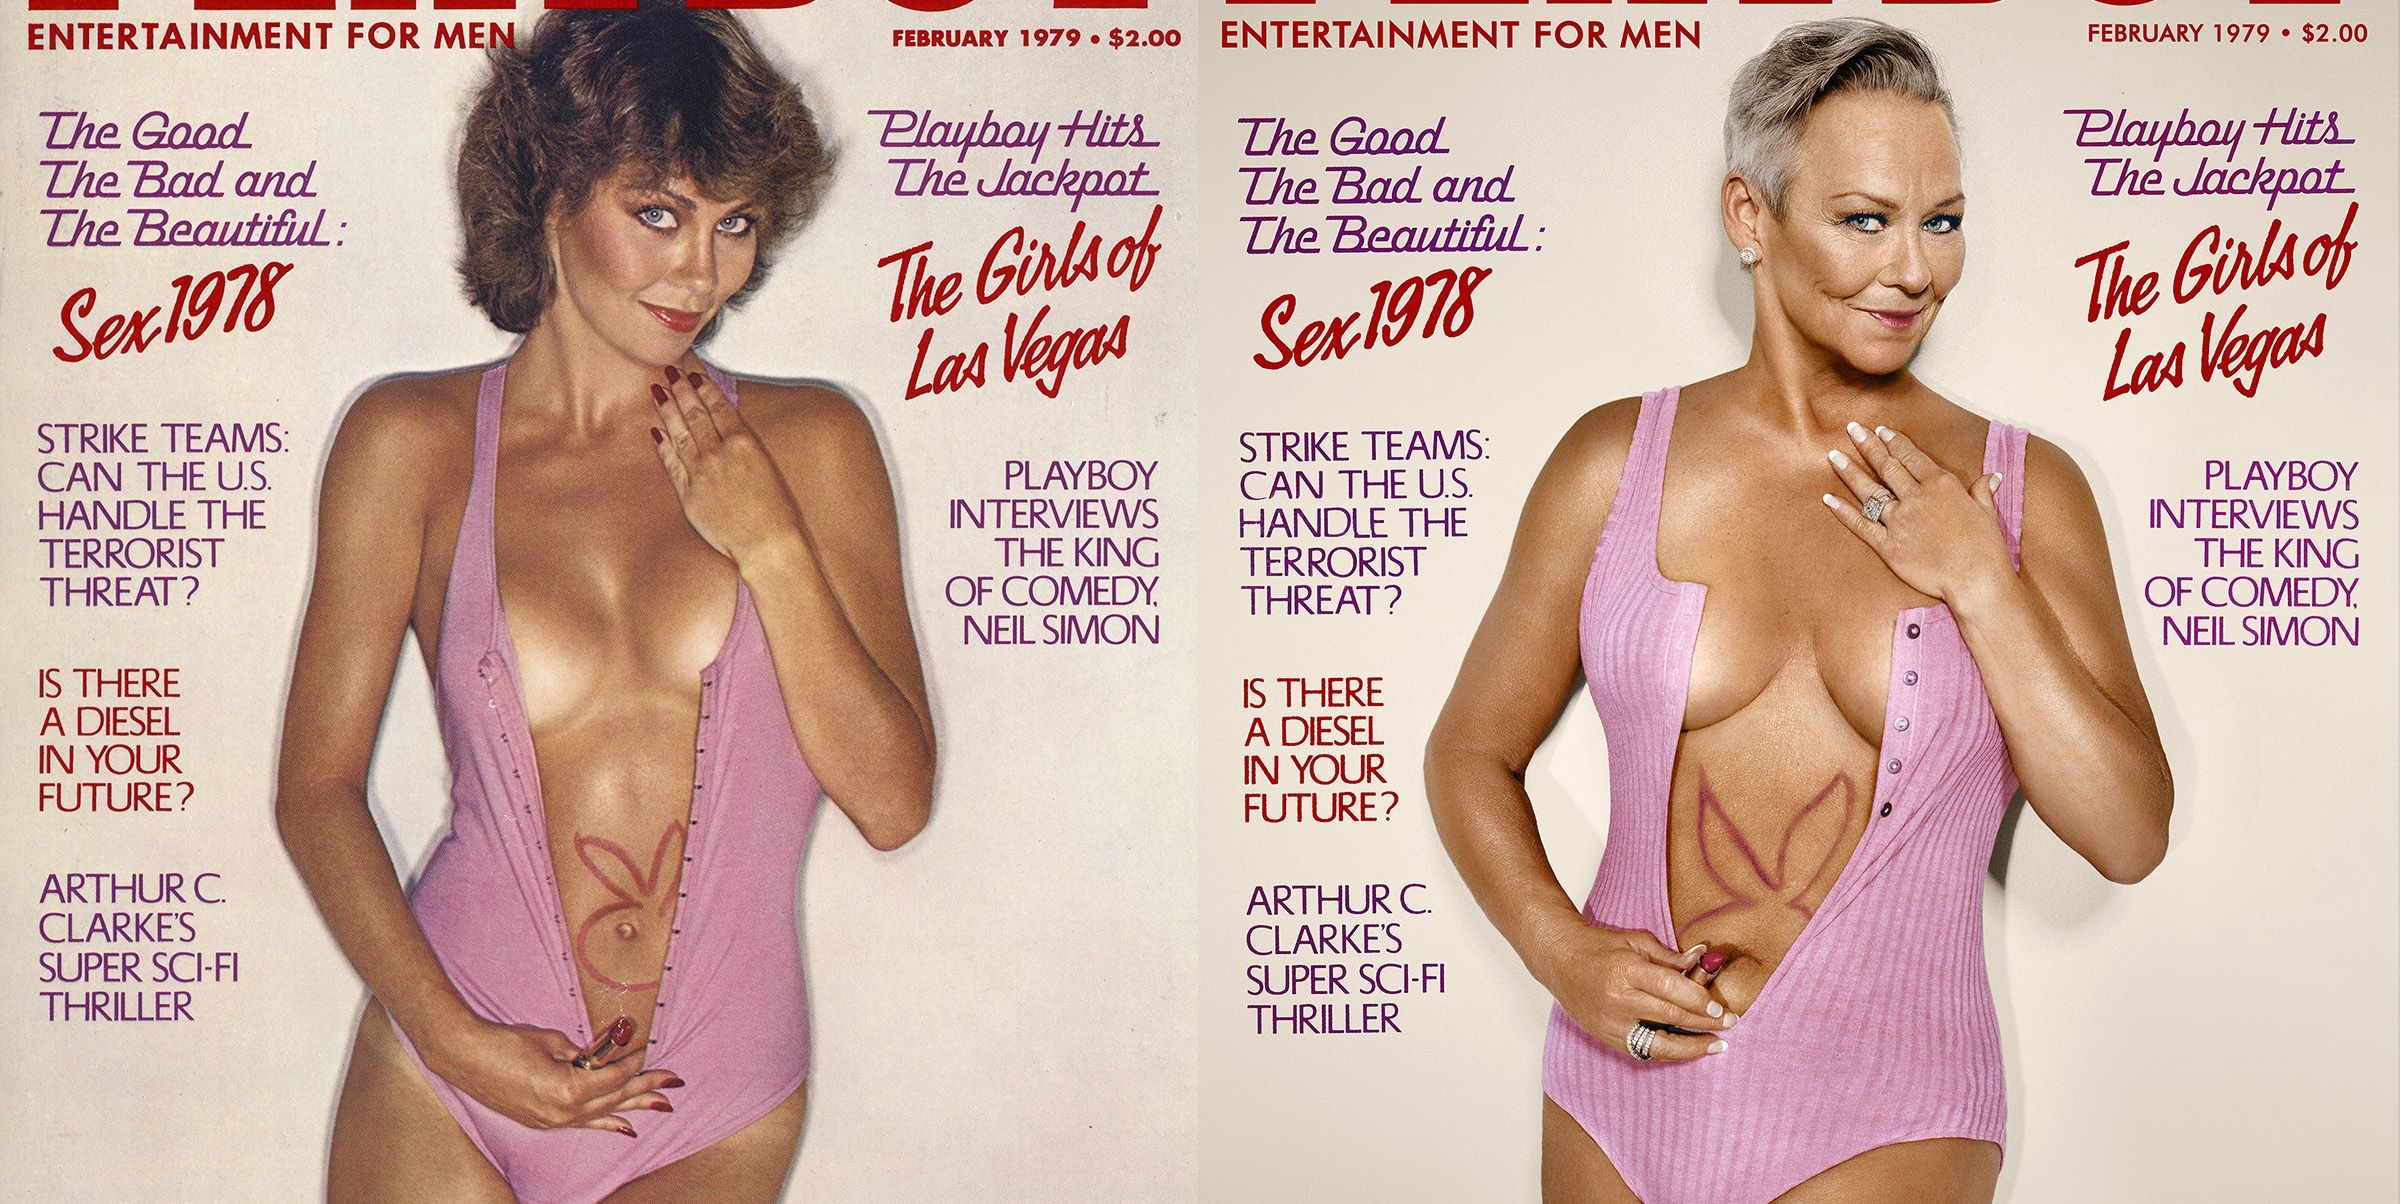 hbz-playboy-iconic-covers-then-now-03-1496944104 (1)